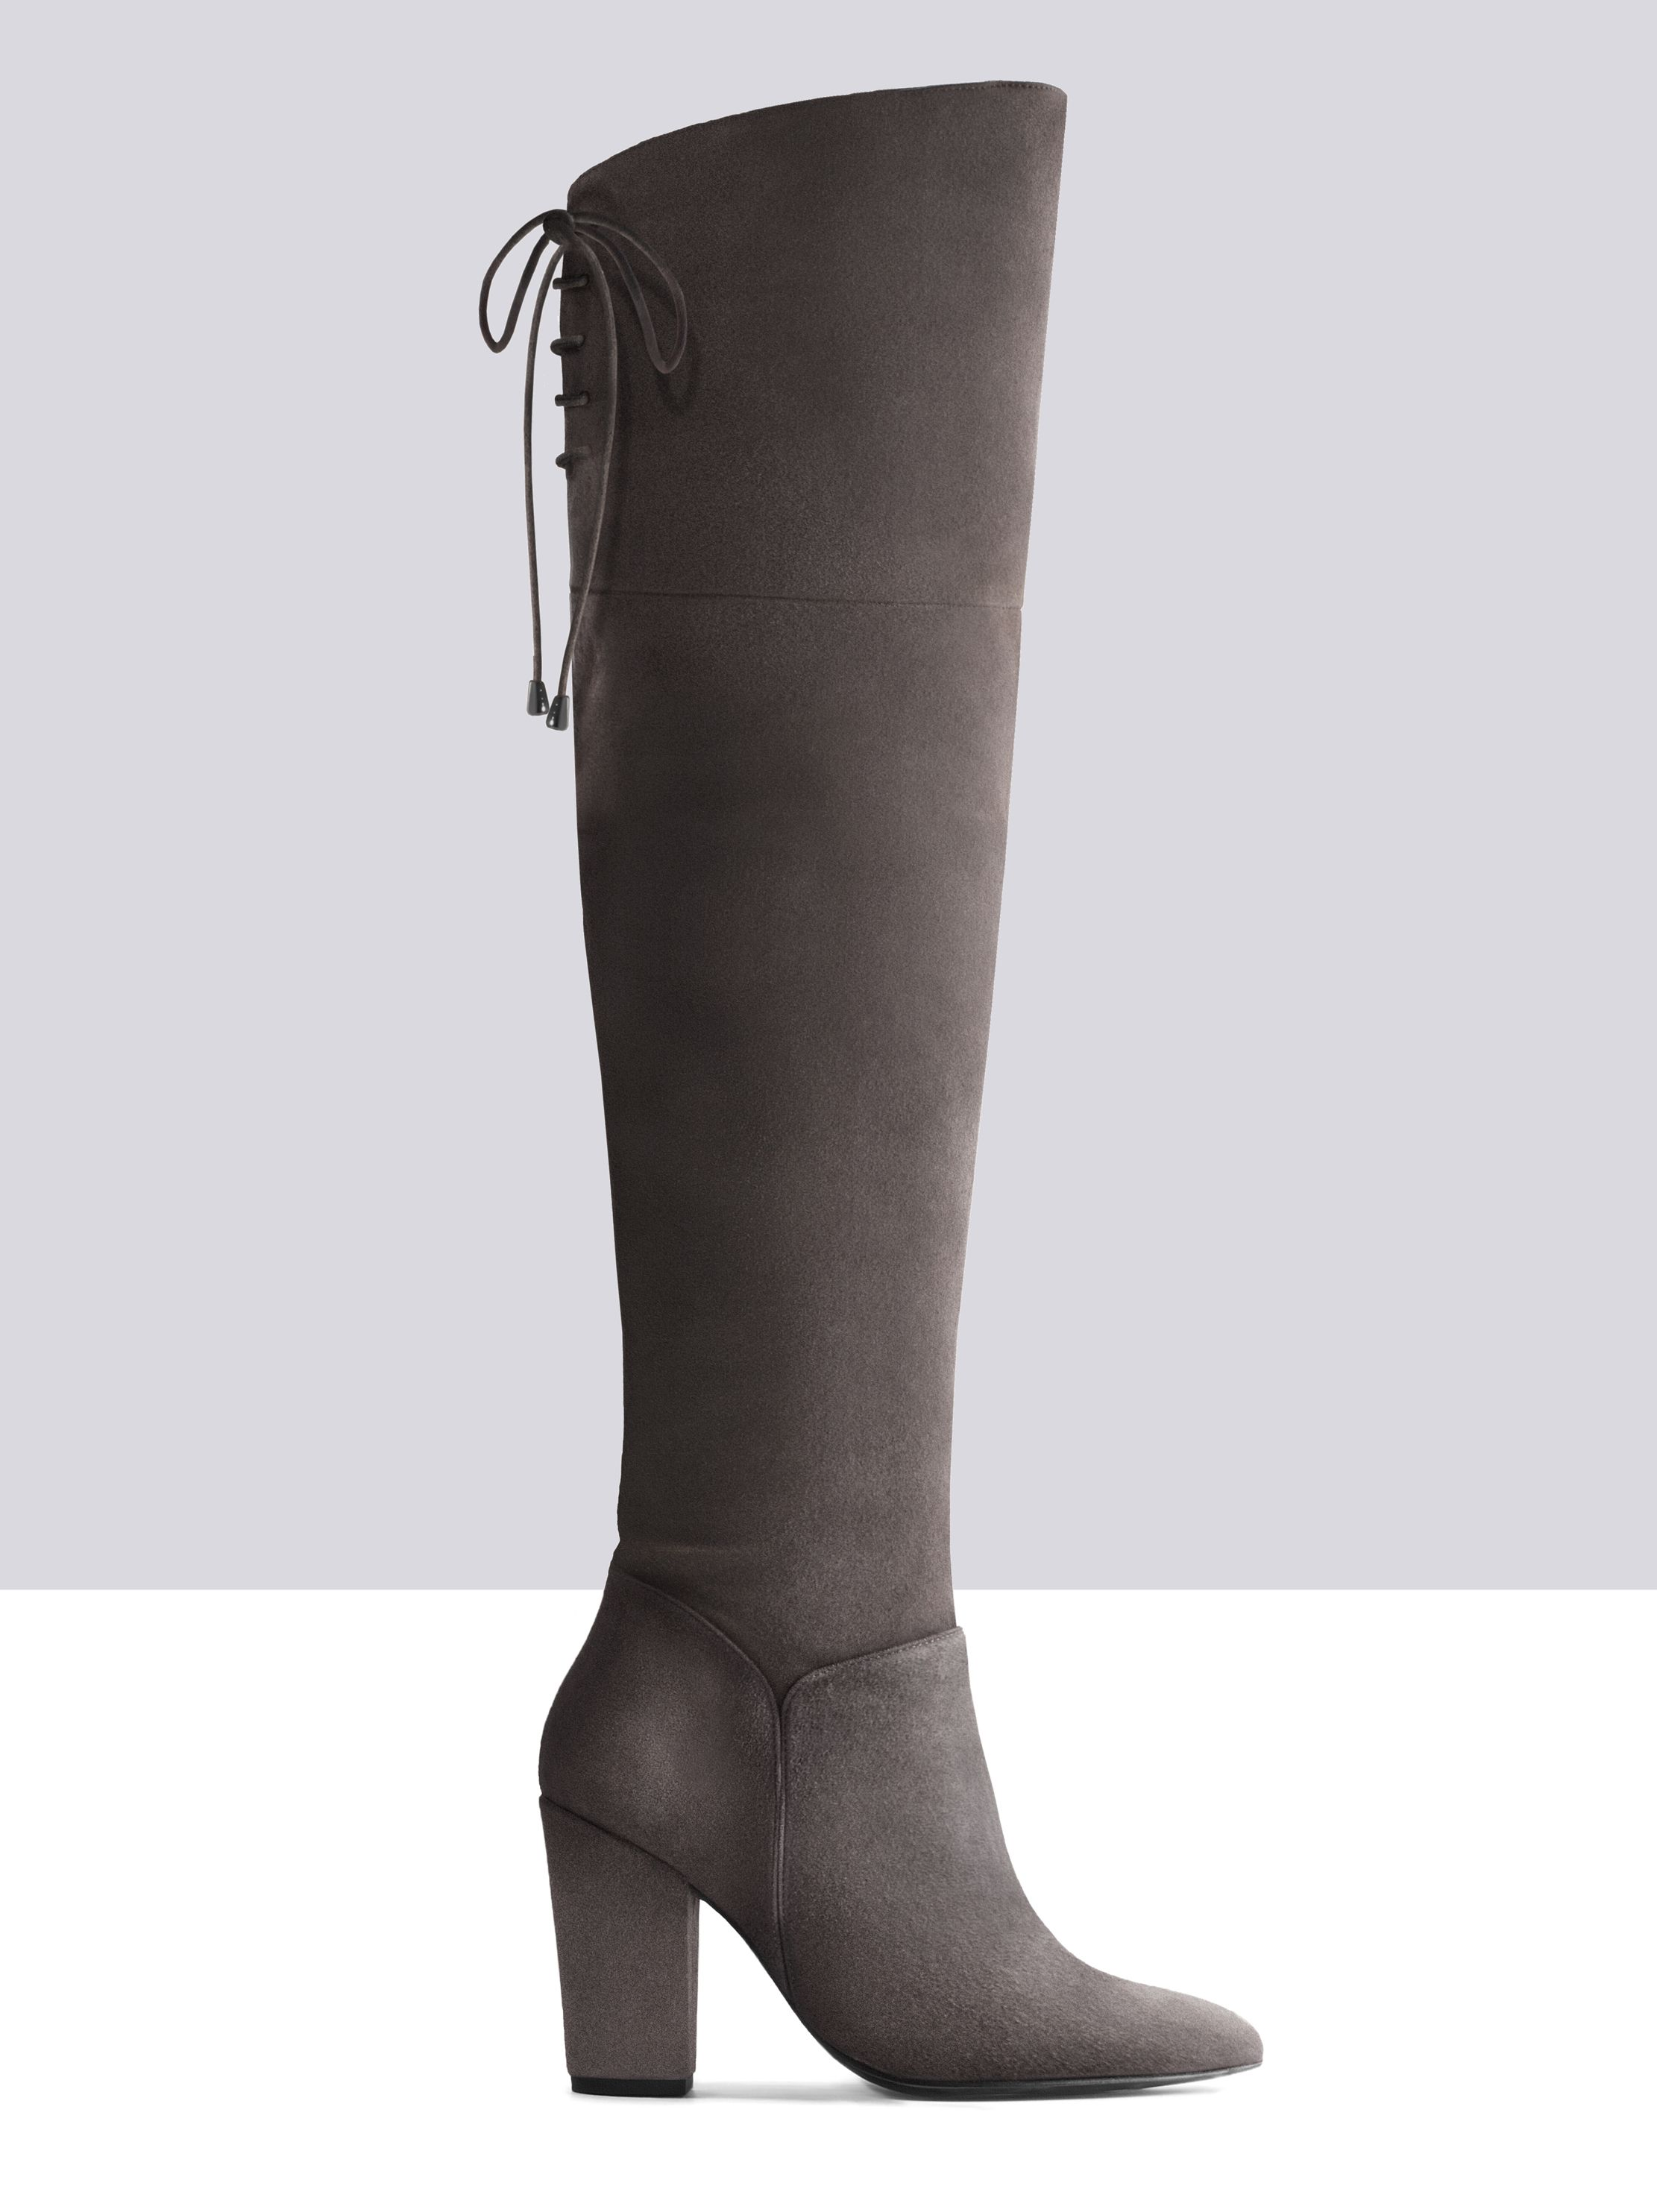 Acantha grey suede wide calf boots - in love! - SHOES | Pinterest ...